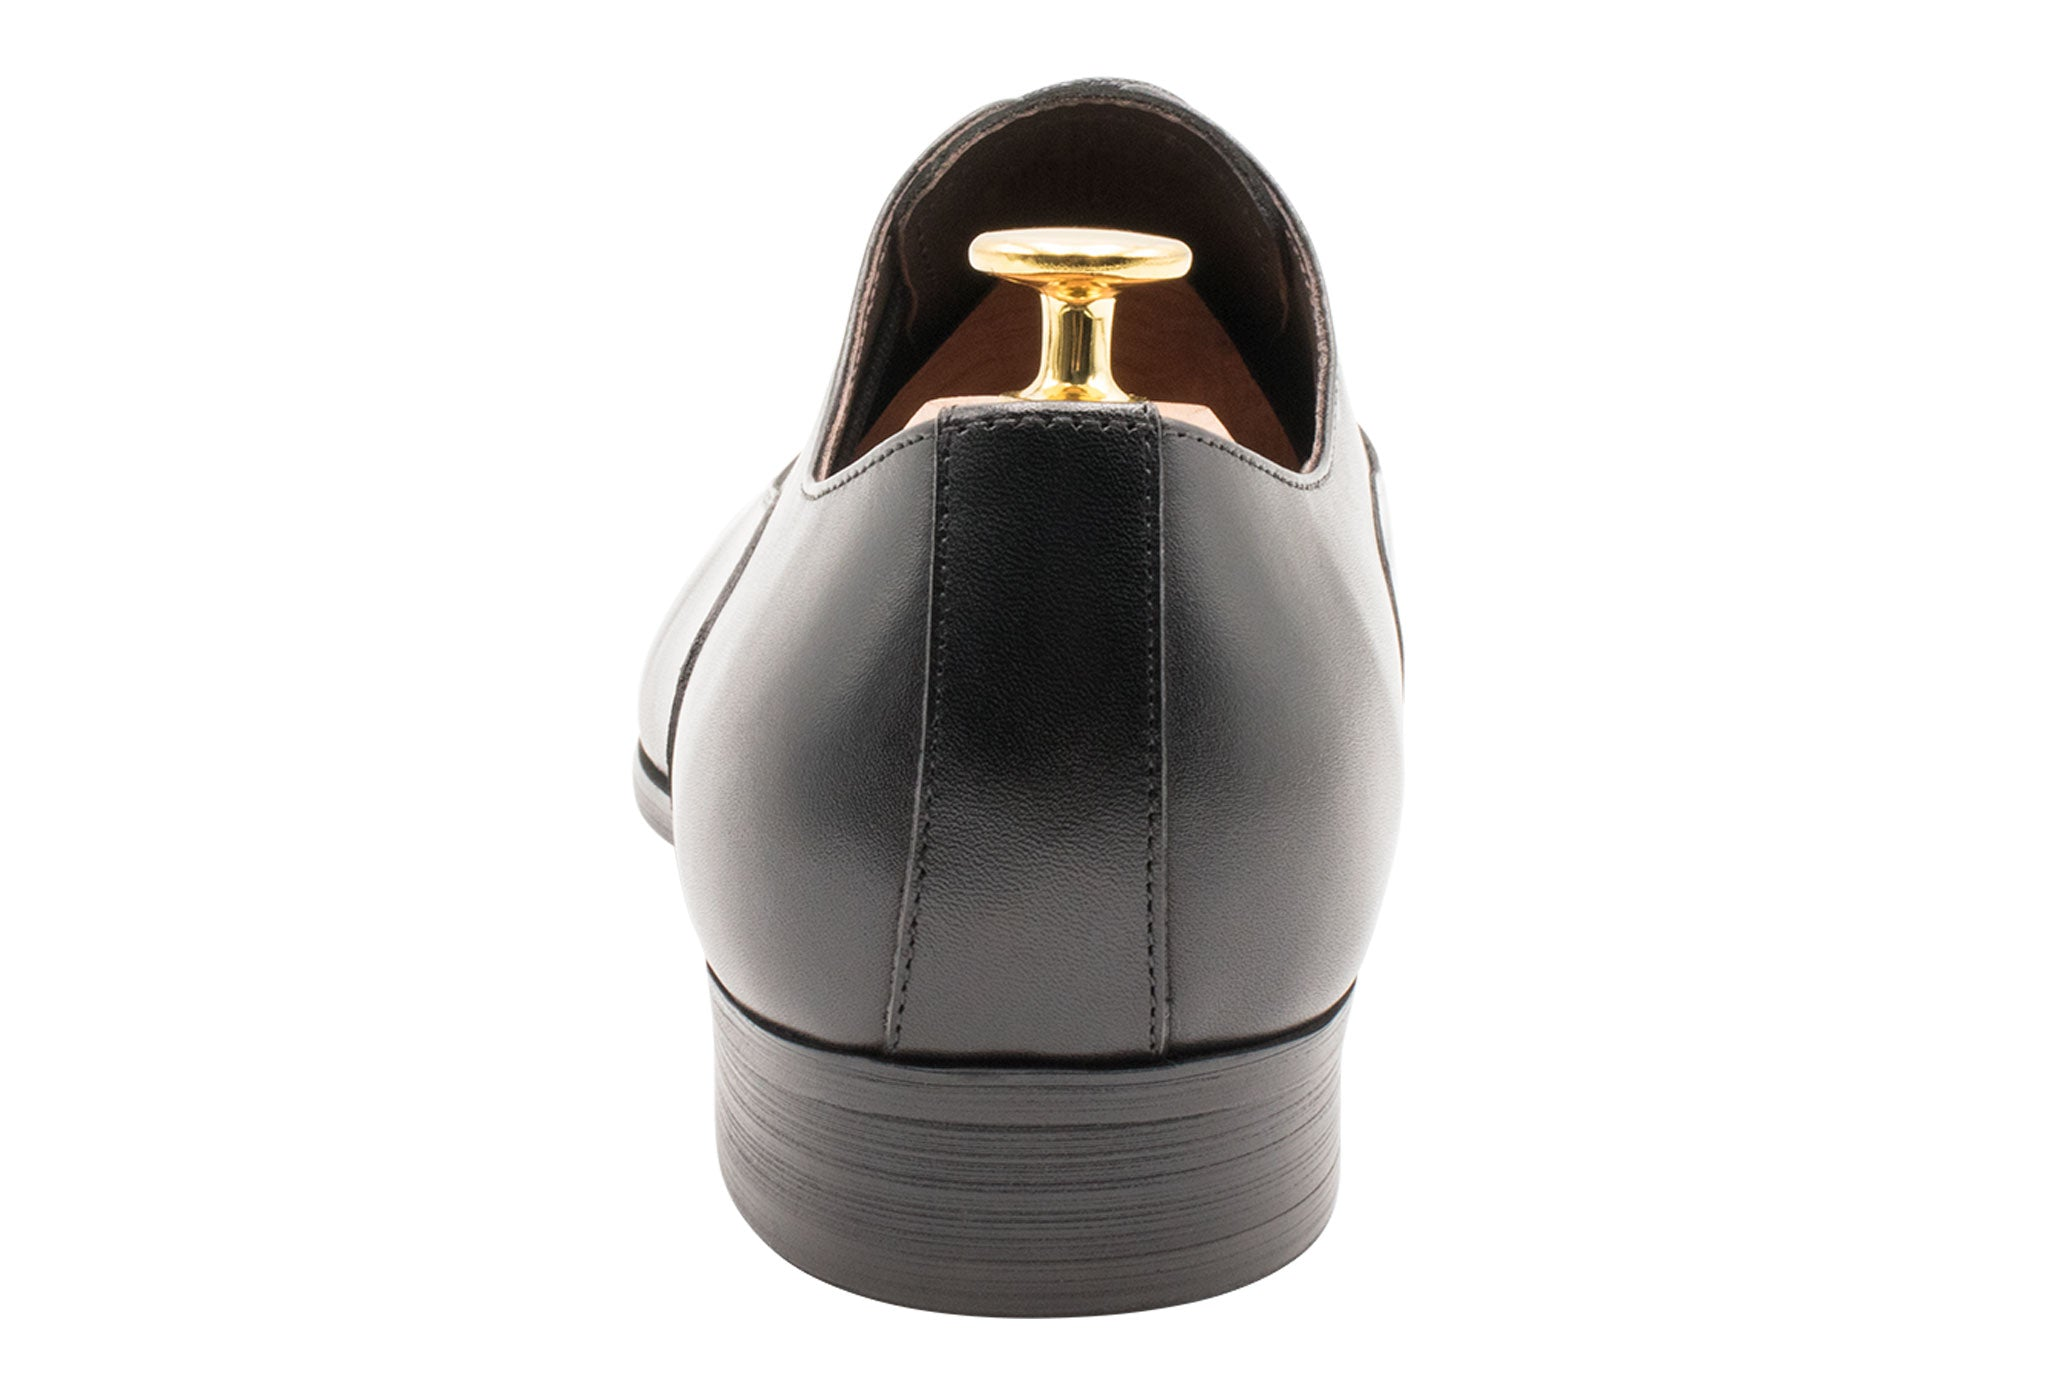 Calafate II Straight Cap Black Oxford